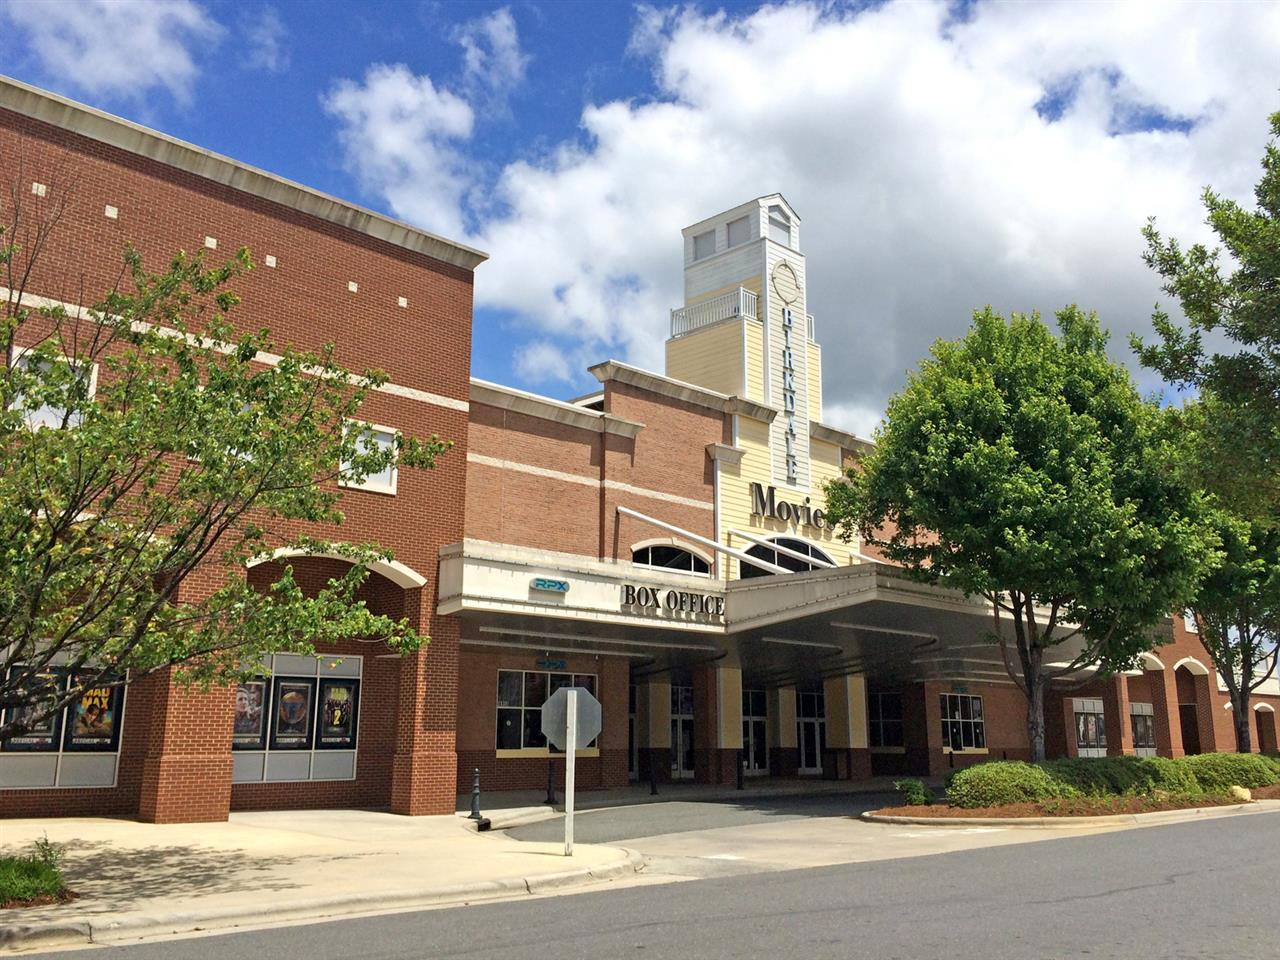 Movie theater (Birkdale Movies is a Regal Cinema) in the premier live-work-play community just north of Charlotte, #BirkdaleVillage in #Huntersville #NC! #LeadingRElocal